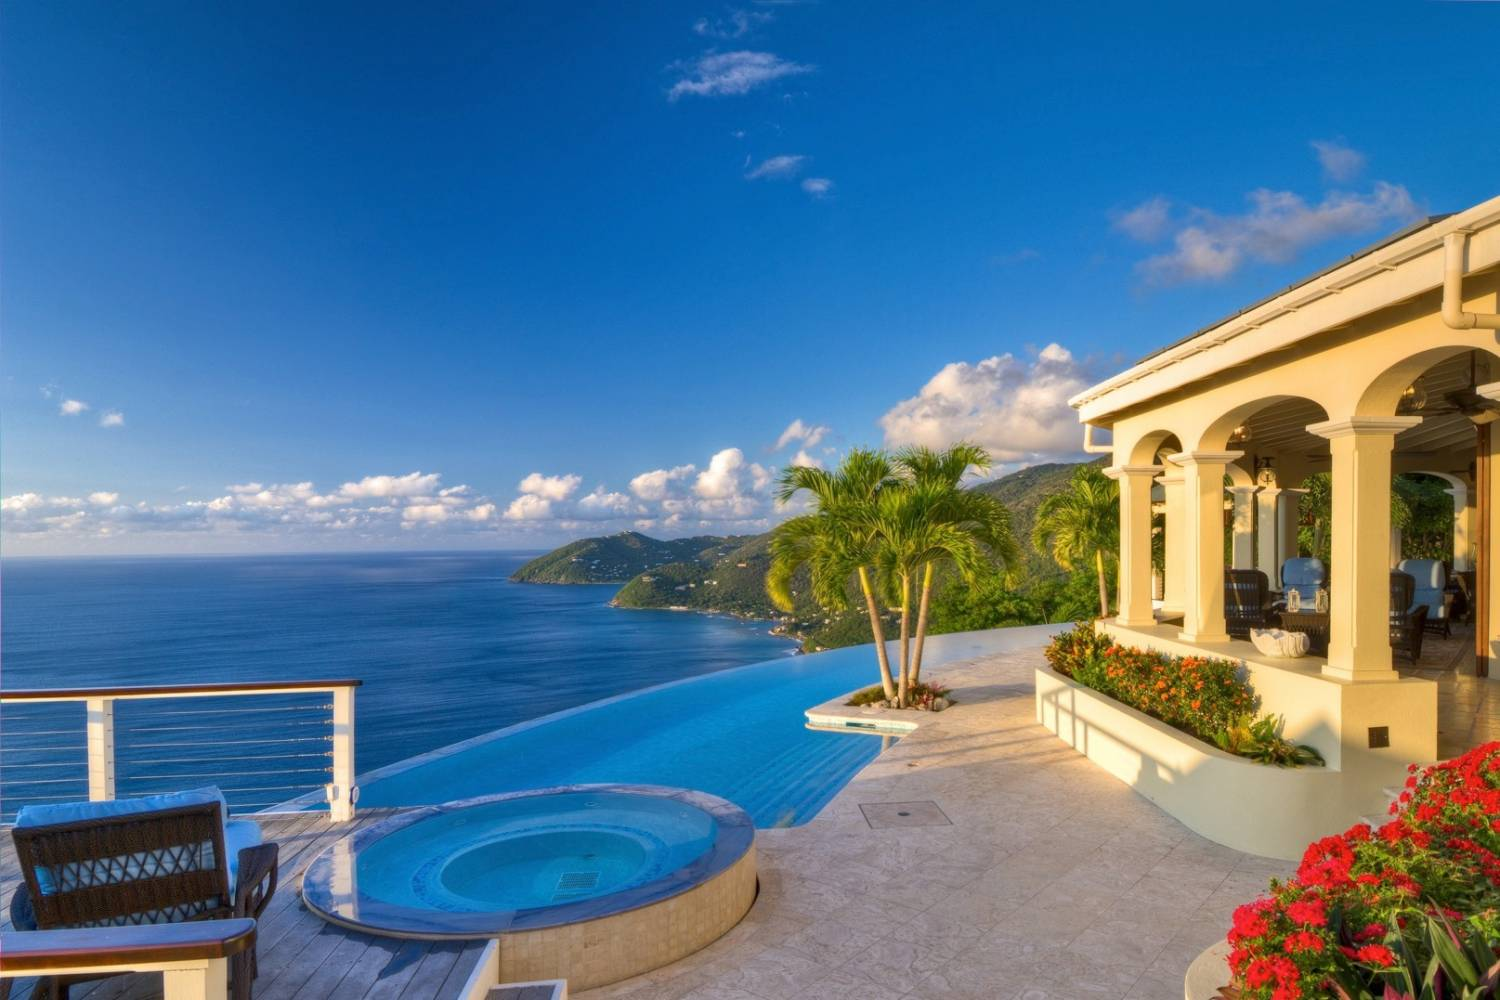 Big things happen in Windy Hill, Virgin Gorda, British Virgin Islands. Ready to try the latest one? Visit Take a Chef and book a Private Chef, header